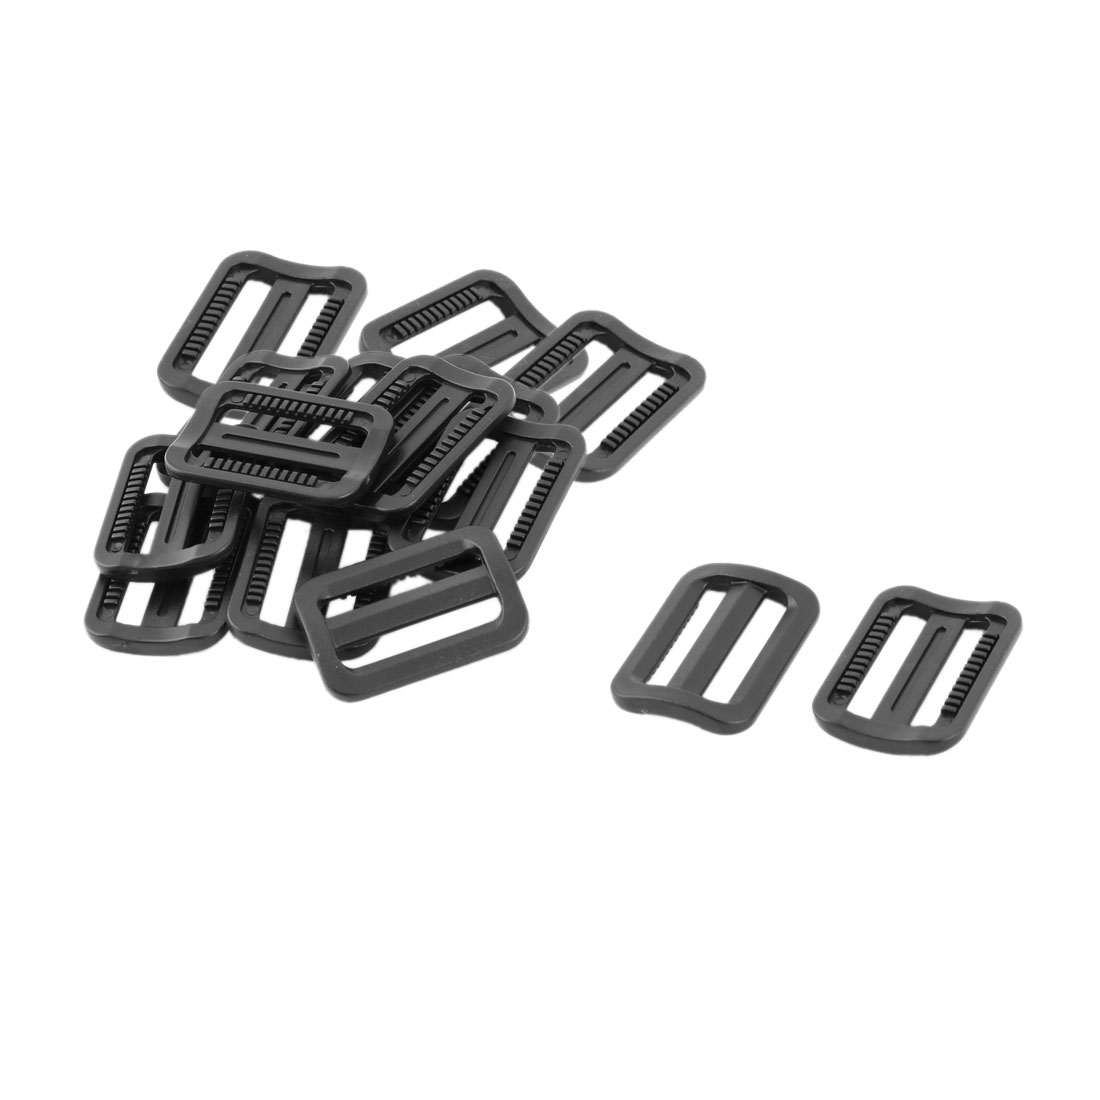 Travel Plastic Adjustable Backpack Tri Glide Buckle Black 25mm Strap Width 15pcs